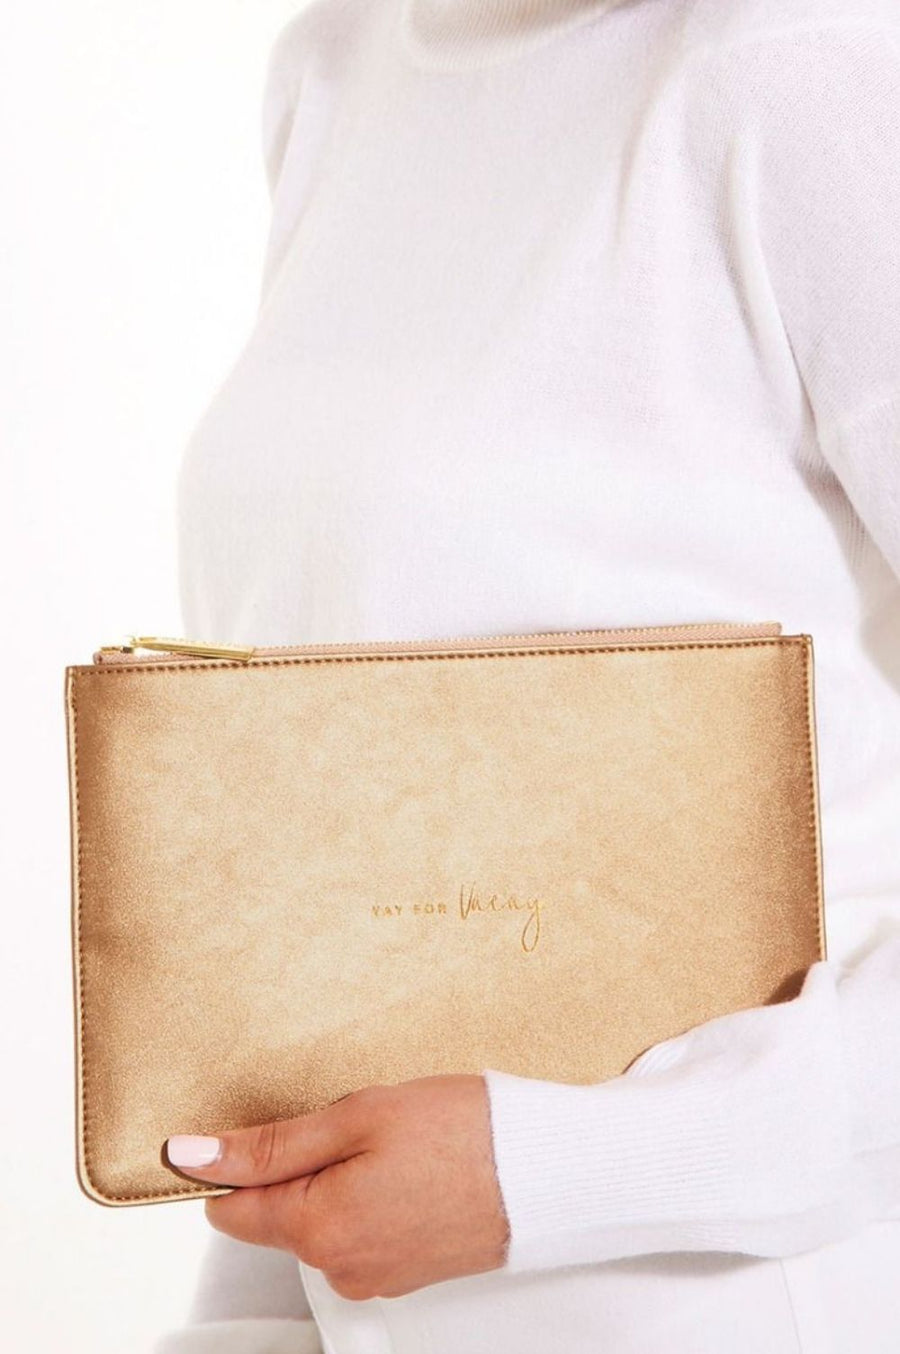 Katie Loxton 'Yay for Vacay' Perfect Pouch